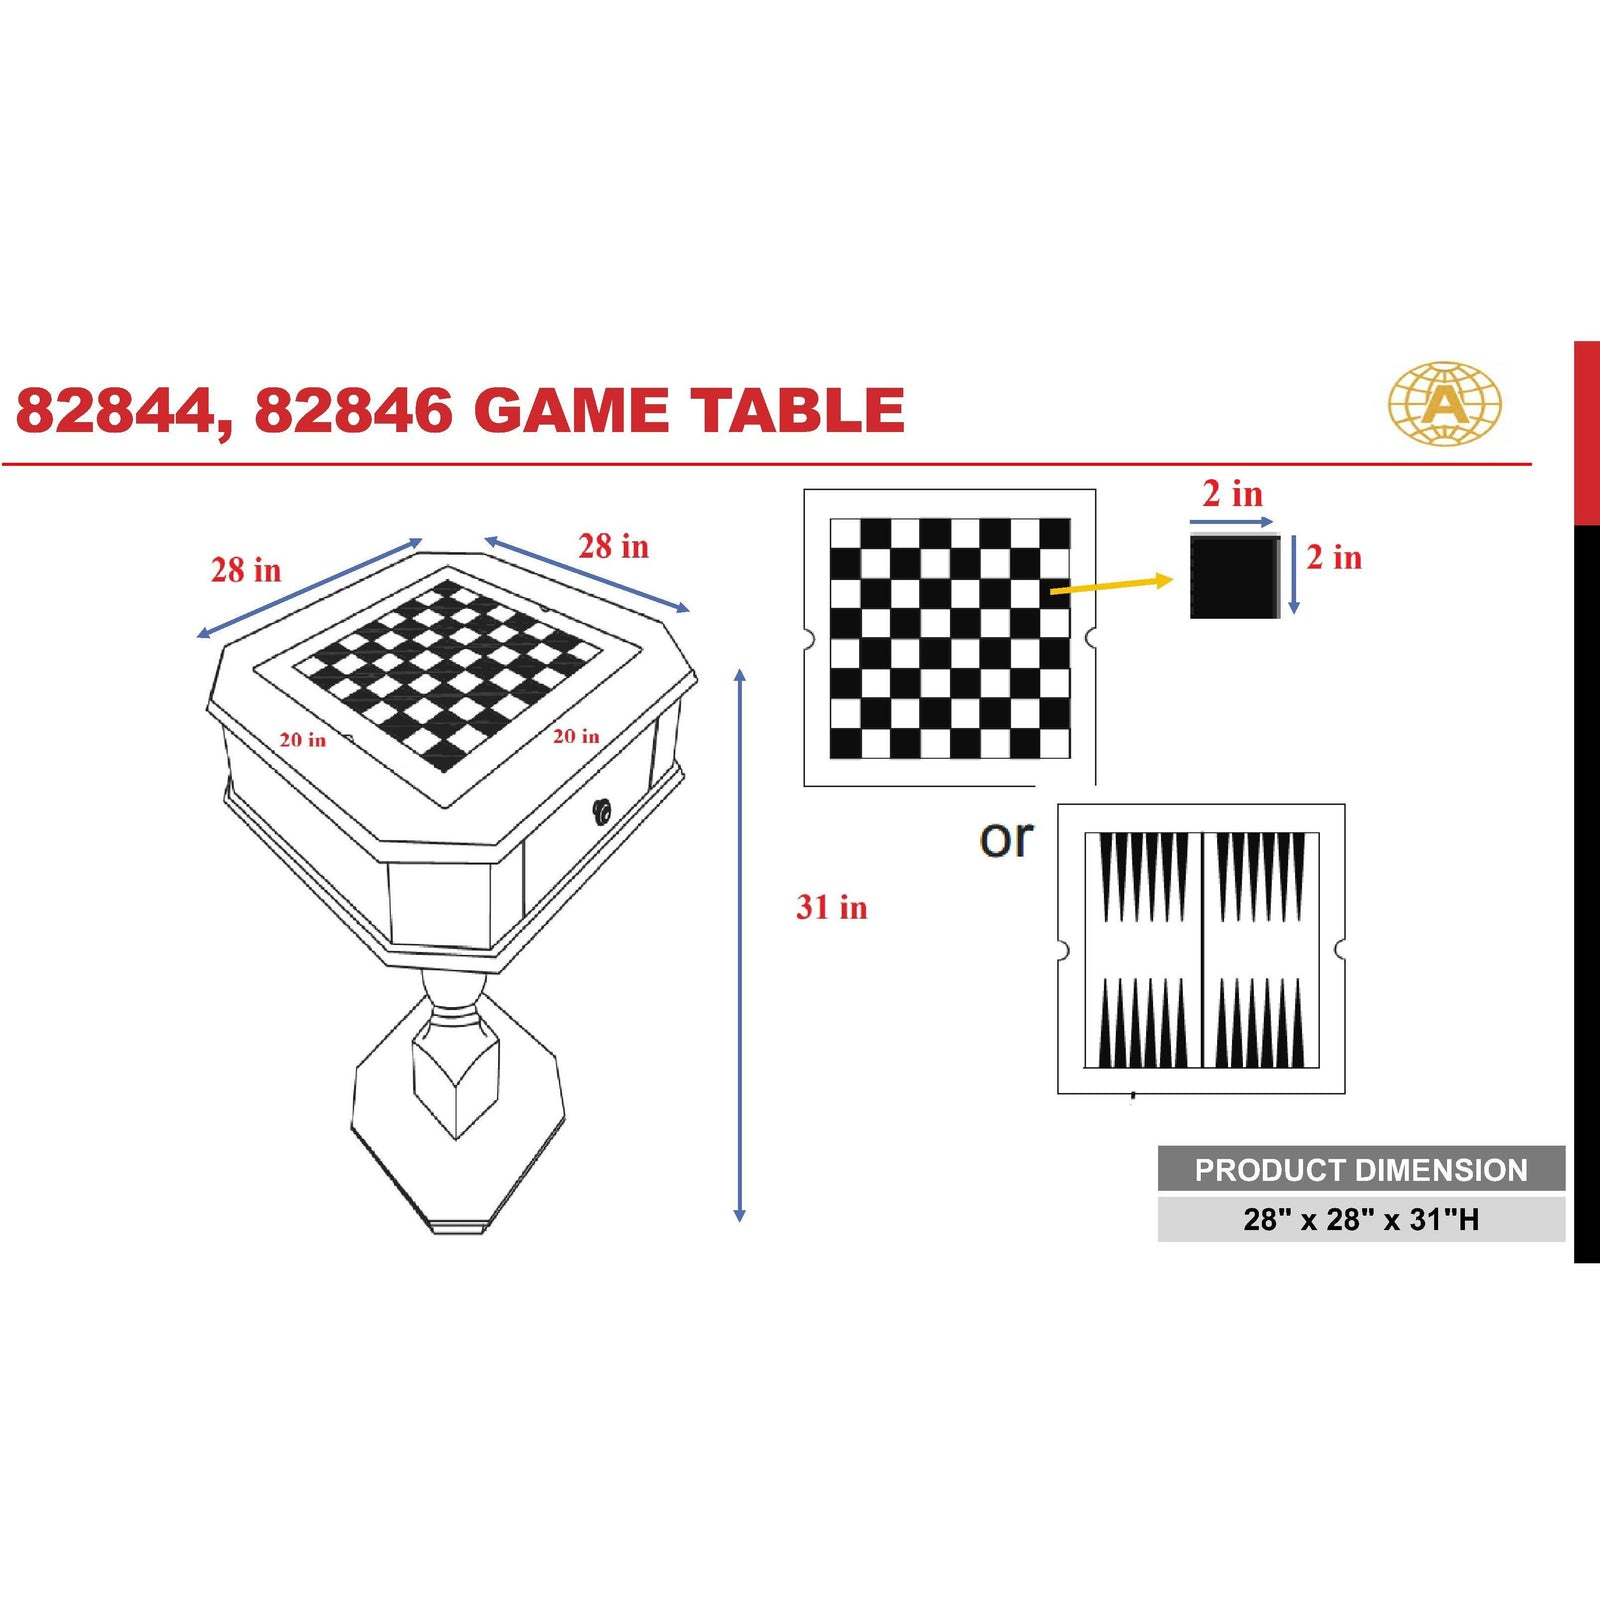 White Smoke Game Table Reversible Game Tray 3-in-1 Chess, Checker, & Backgammon BH82846 BH82844